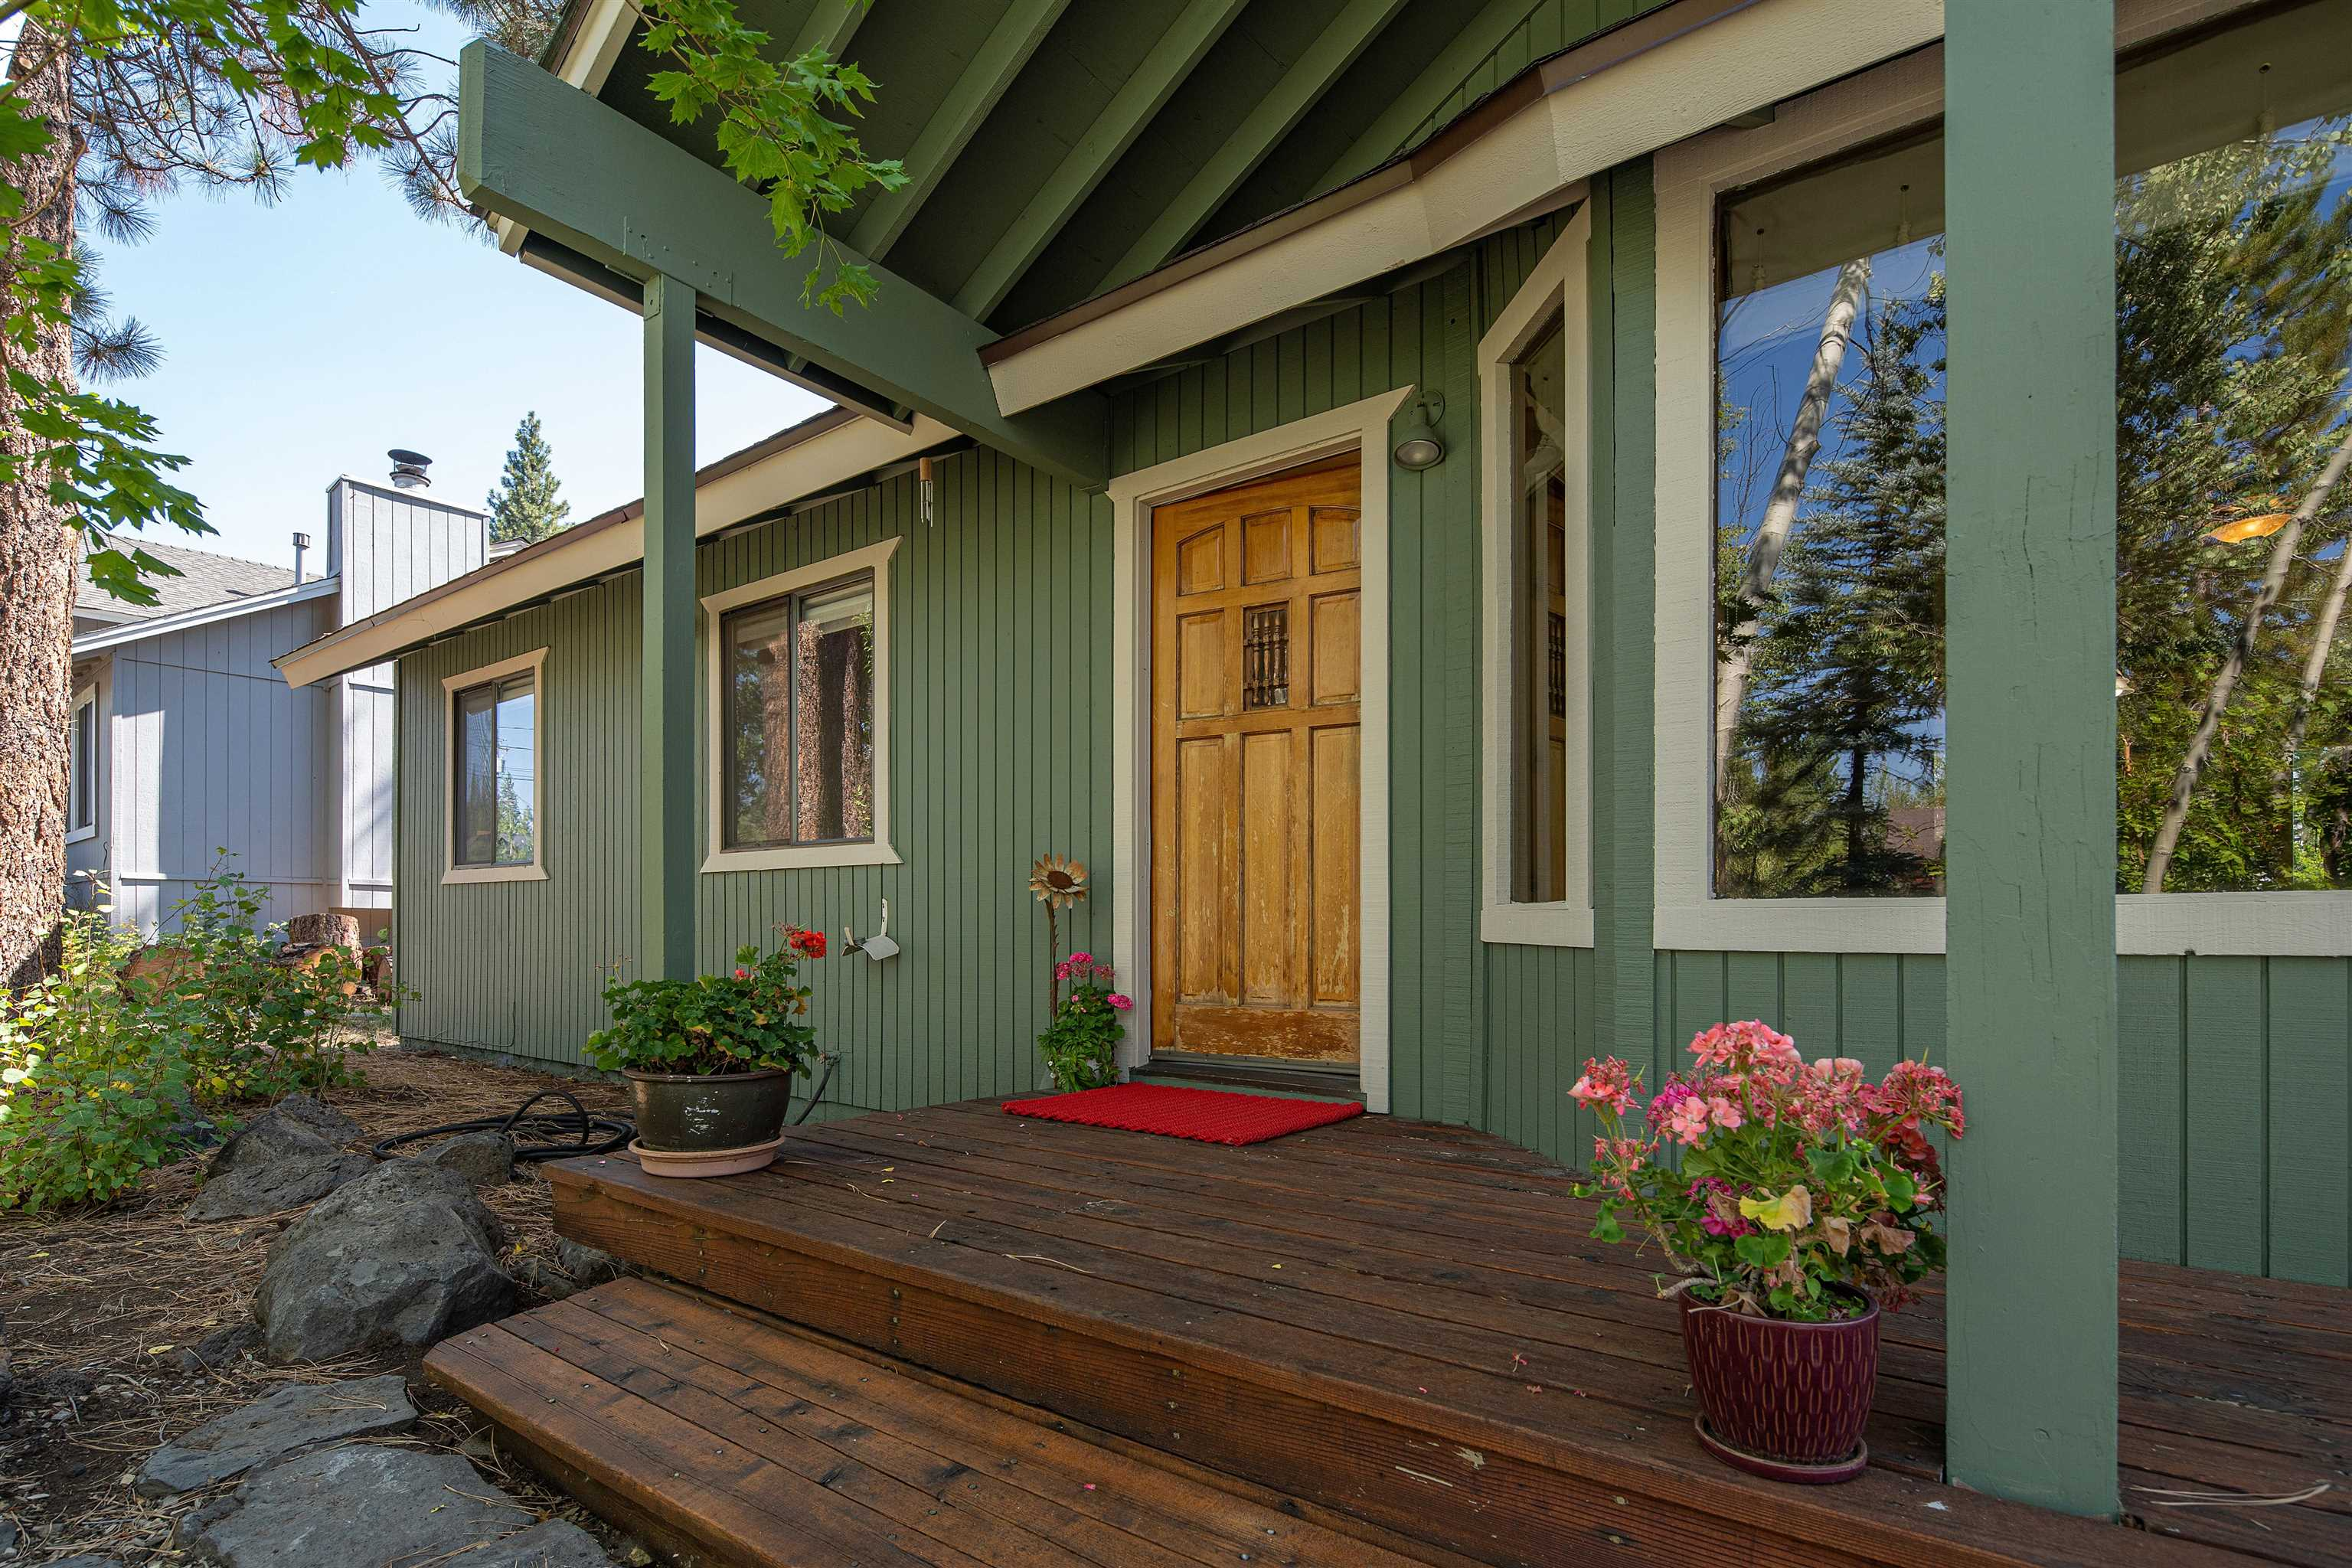 Image for 11151 Dorchester Drive, Truckee, CA 96161-1532